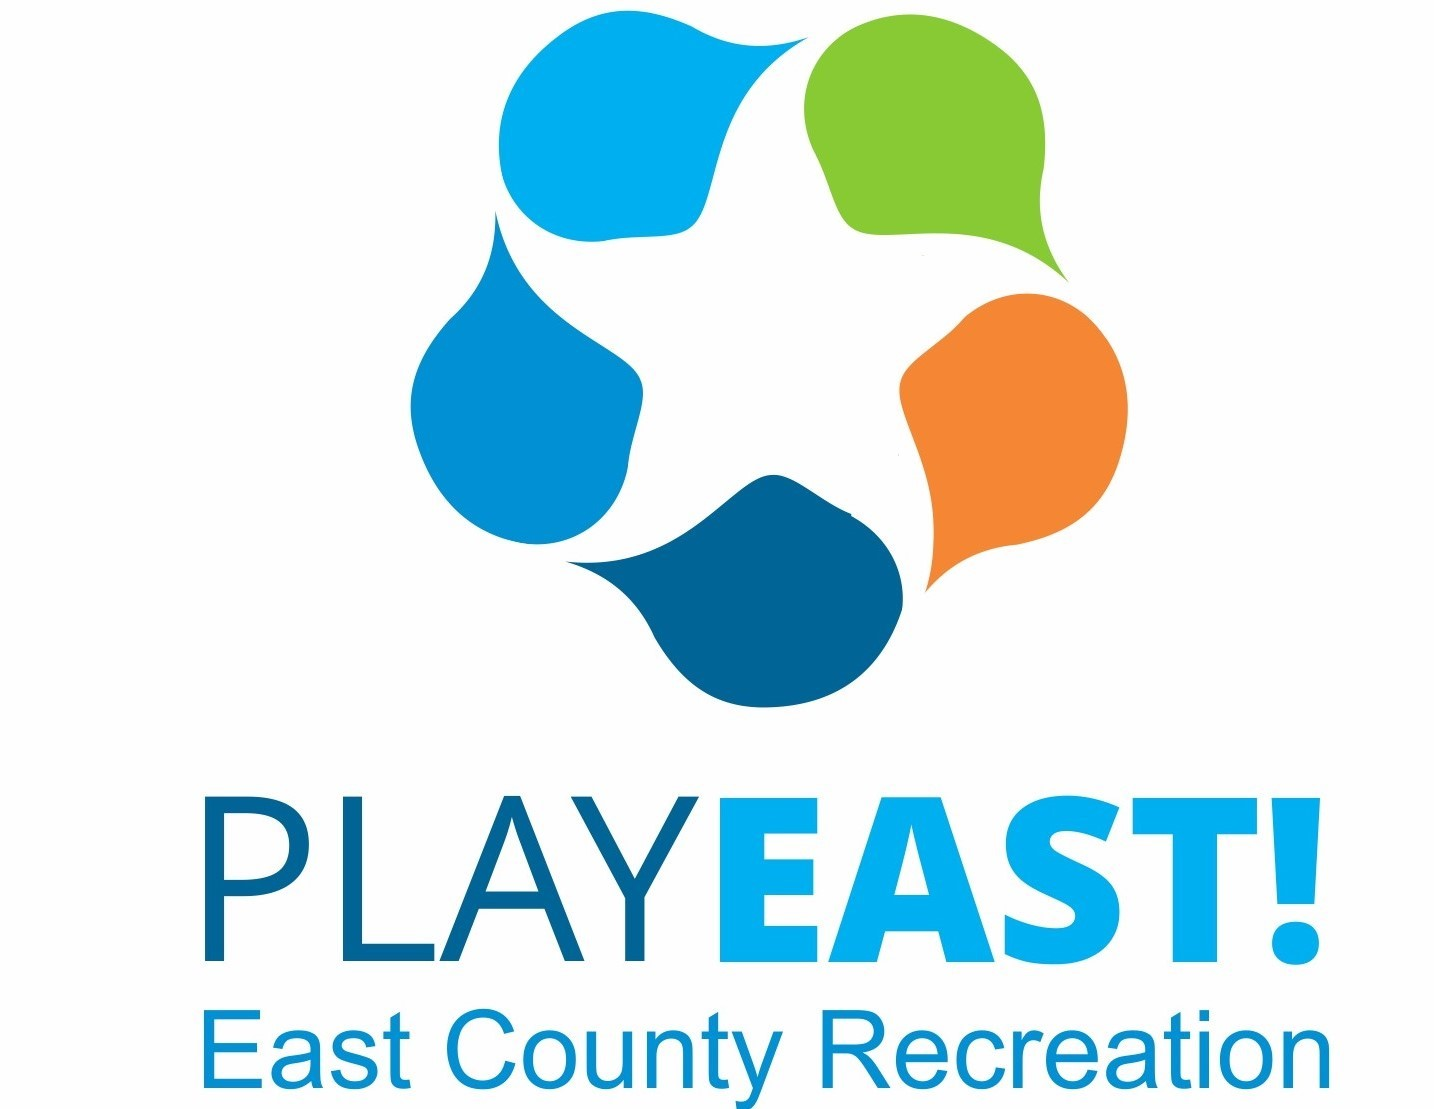 East County Recreation Program Logo